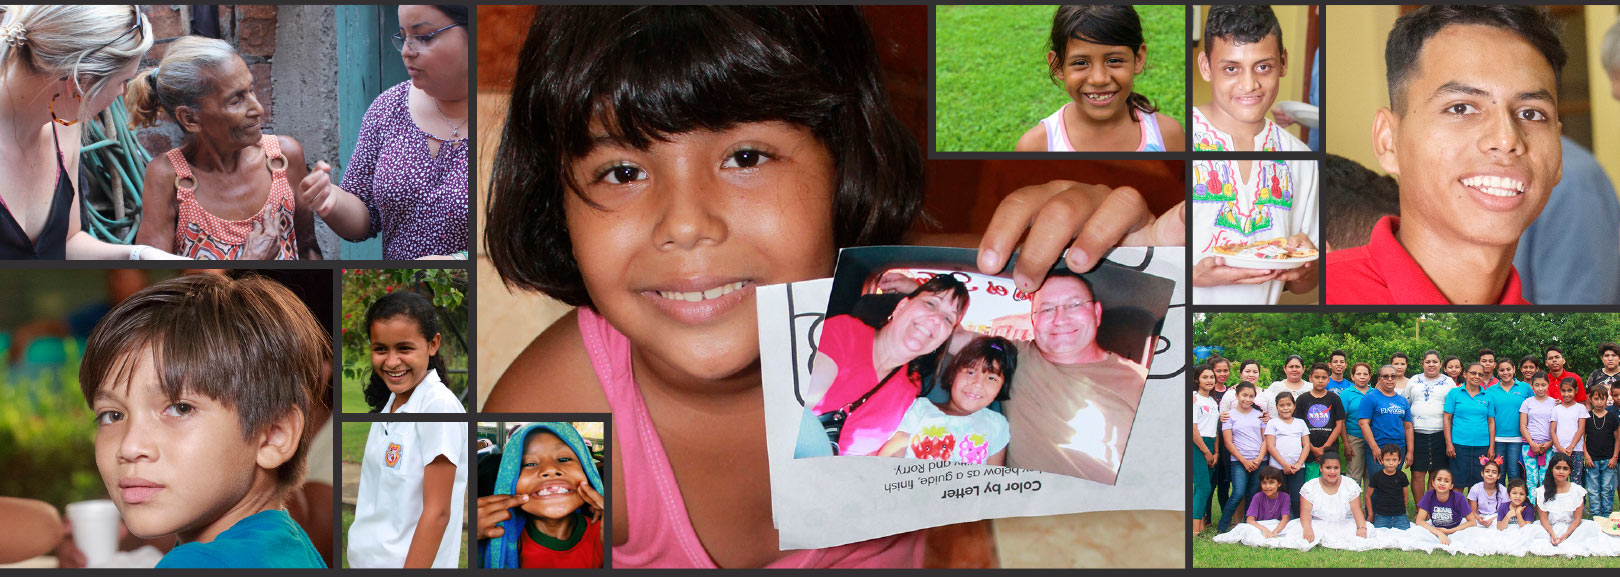 Montage of happy Nicaraguan kids and photos of staff and support families